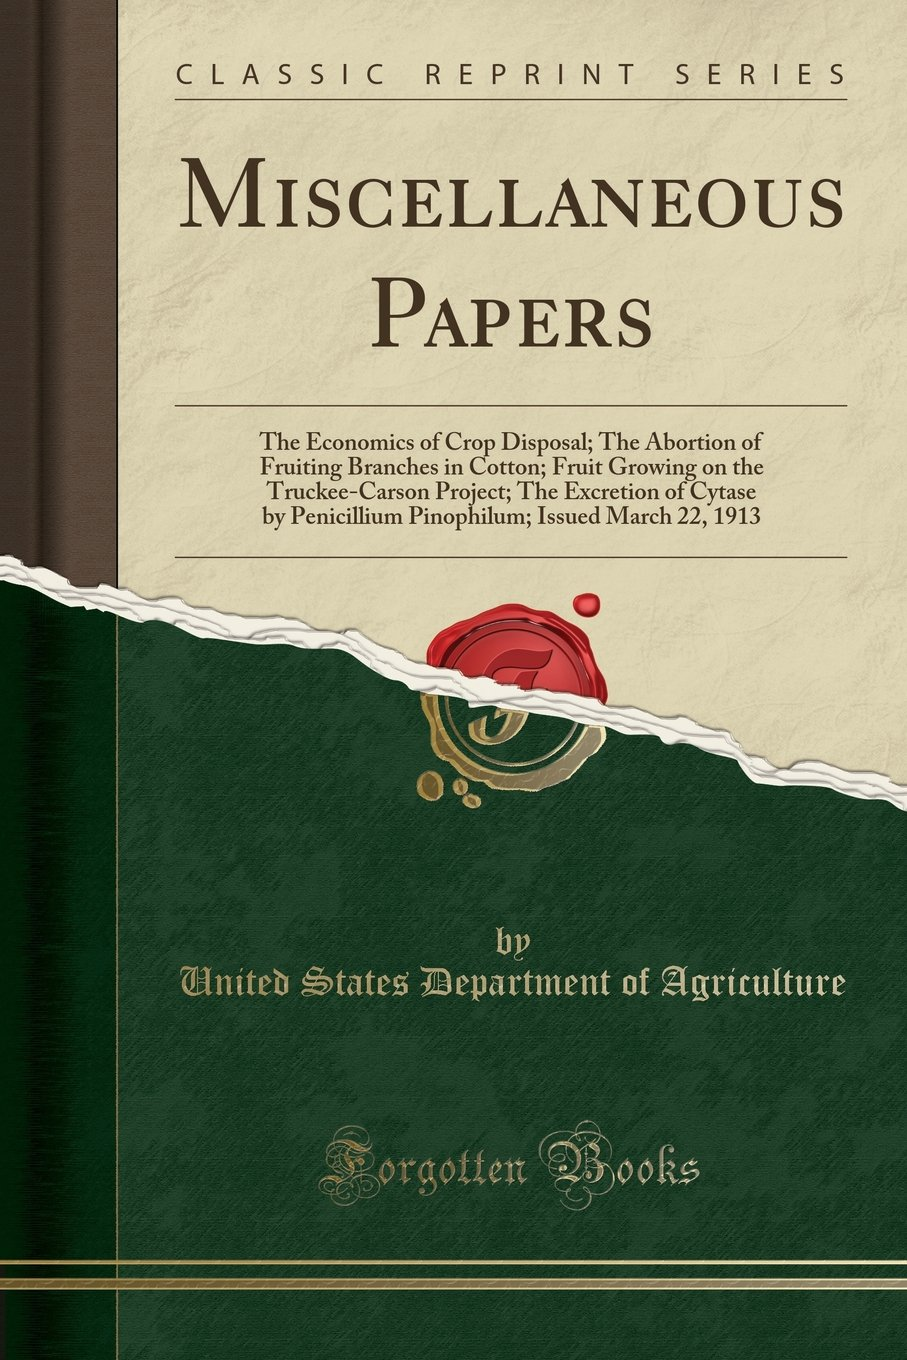 Miscellaneous Papers: The Economics of Crop Disposal; The Abortion of Fruiting Branches in Cotton; Fruit Growing on the Truckee-Carson Project; The ... Issued March 22, 1913 (Classic Reprint) ebook